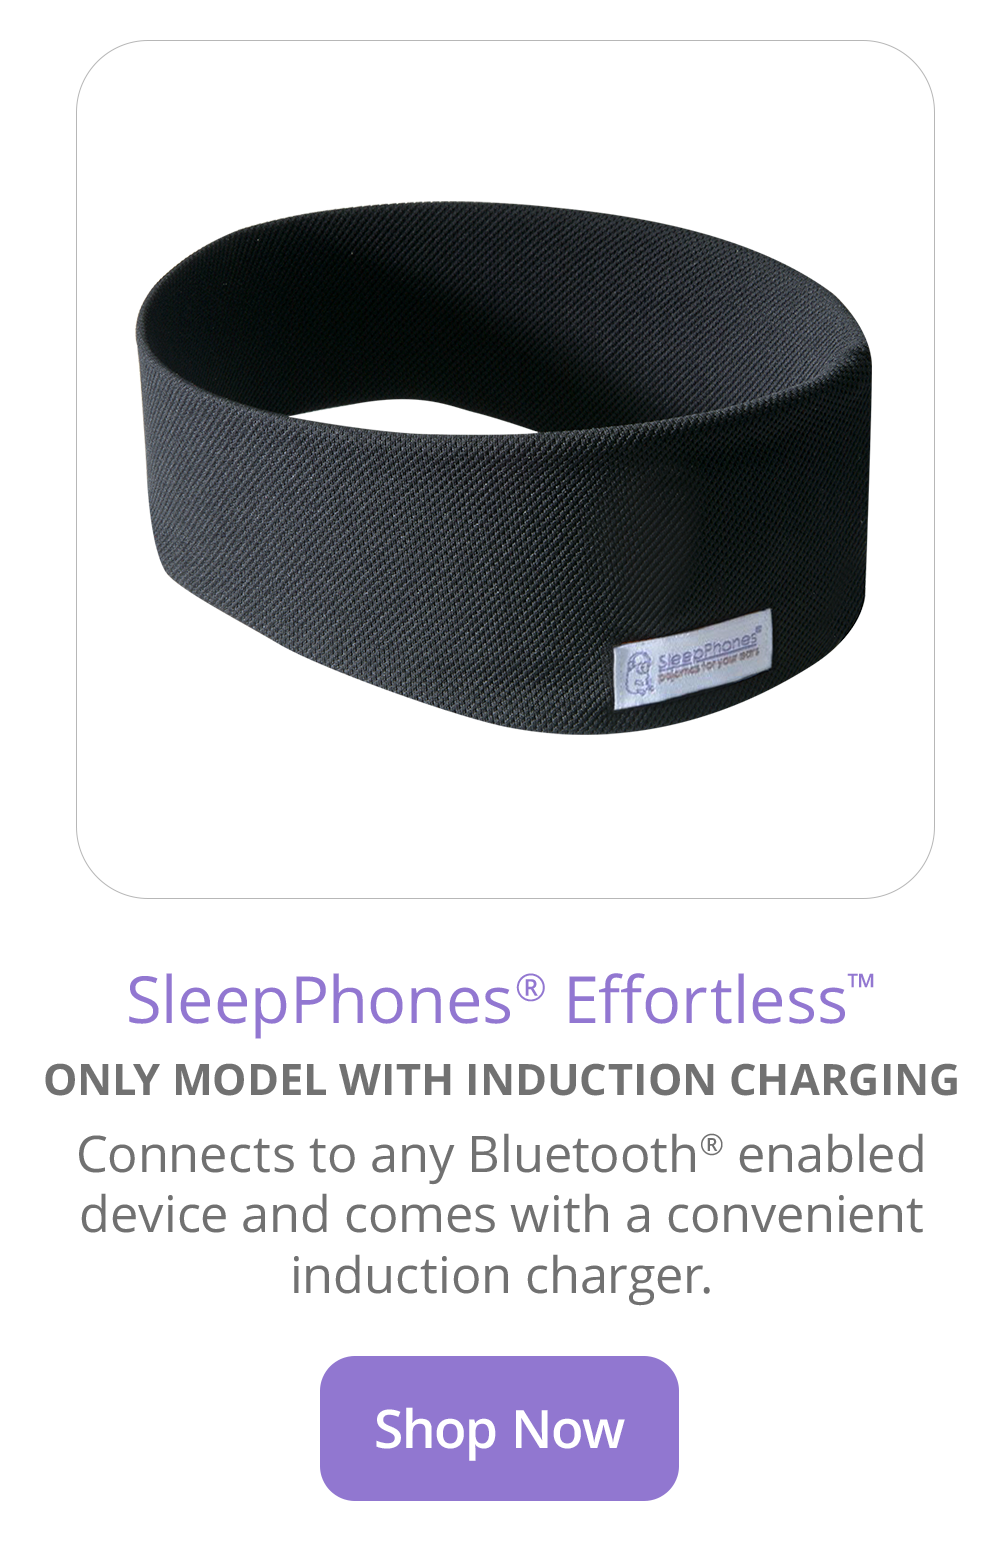 SleepPhones Effortless Sleep Headphones With Wireless Charging In Pitch Black Breeze Fabric